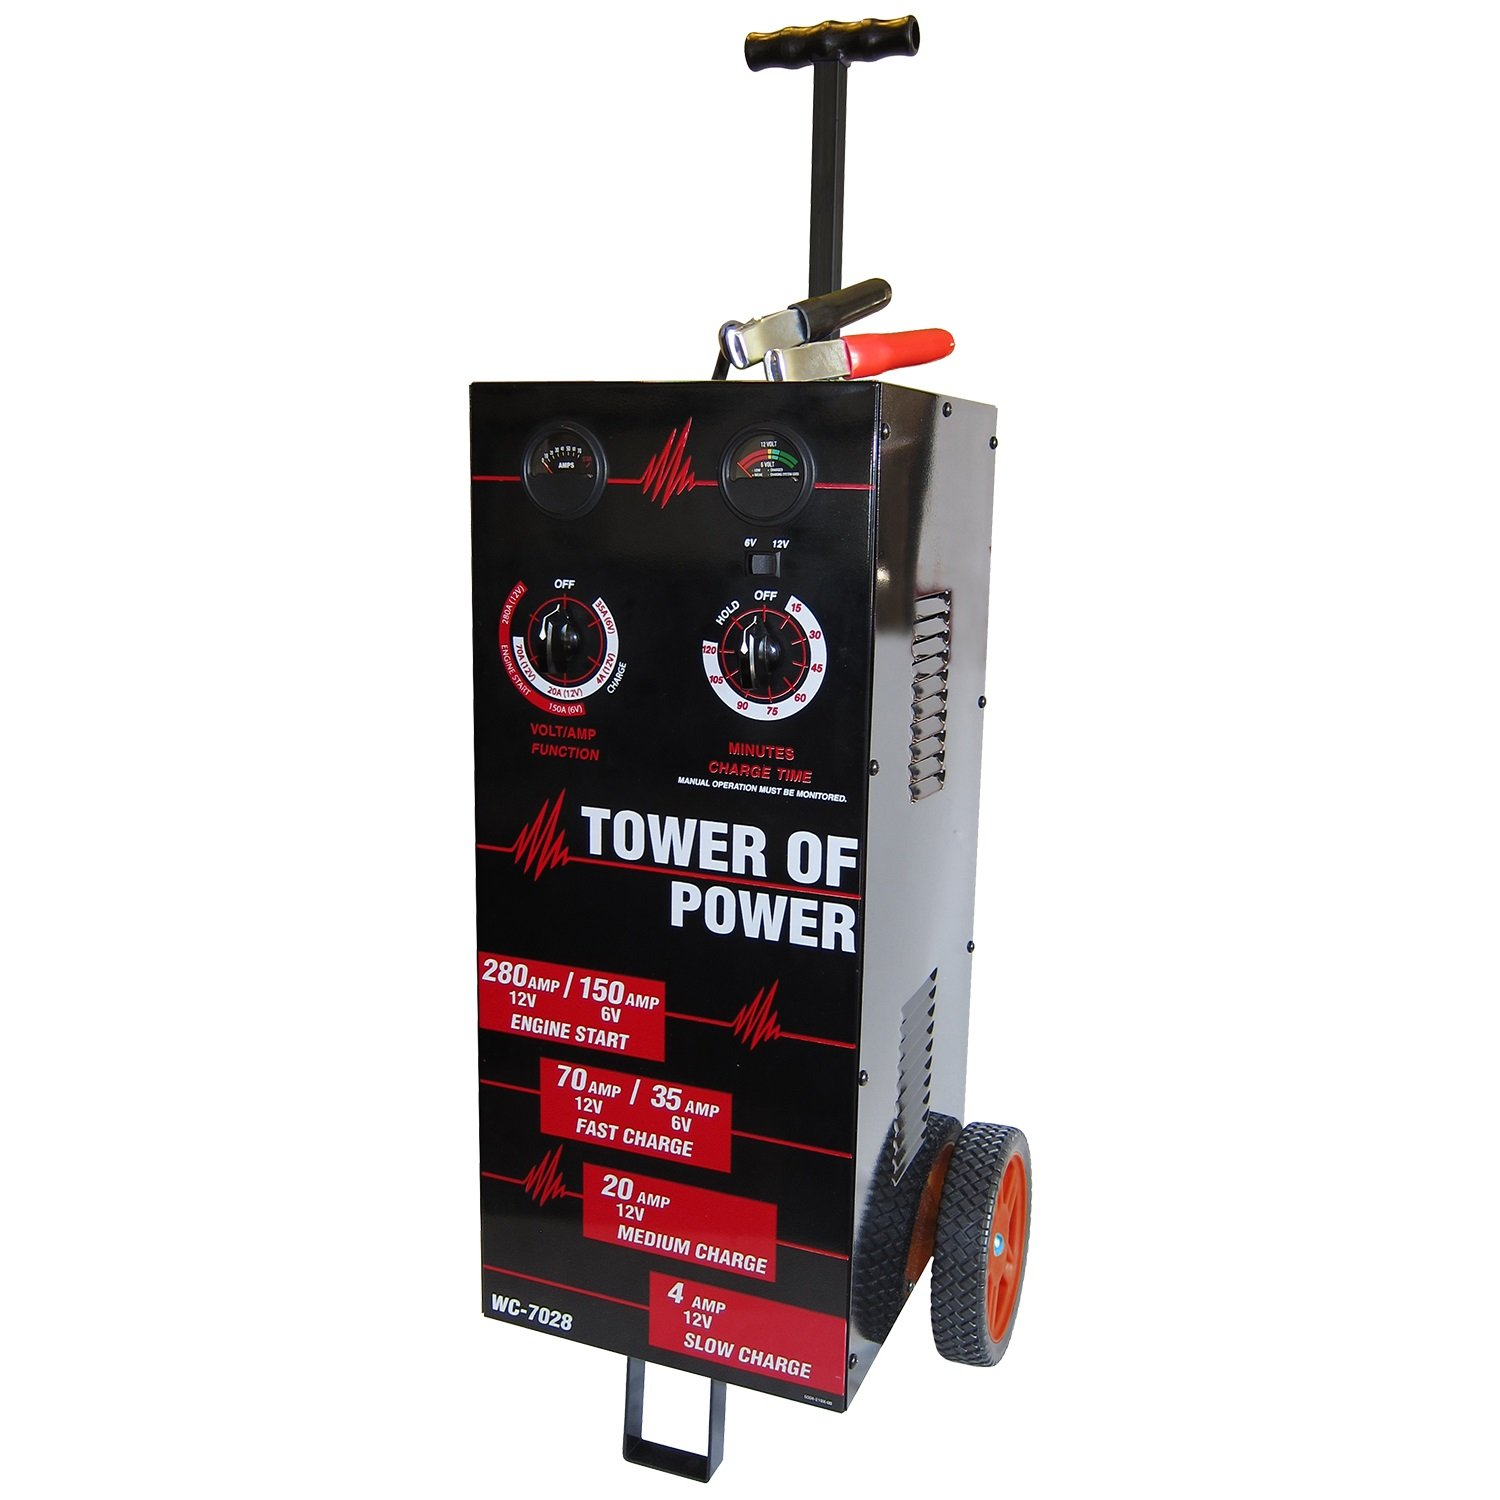 AutoMeter WC-7028 Tower OF Power Wheel Charger 12V 4/30/70 Charging 280 Amp Start 6V 40 Amp Charging 150 Amp Tower OF Power Wheel Charger